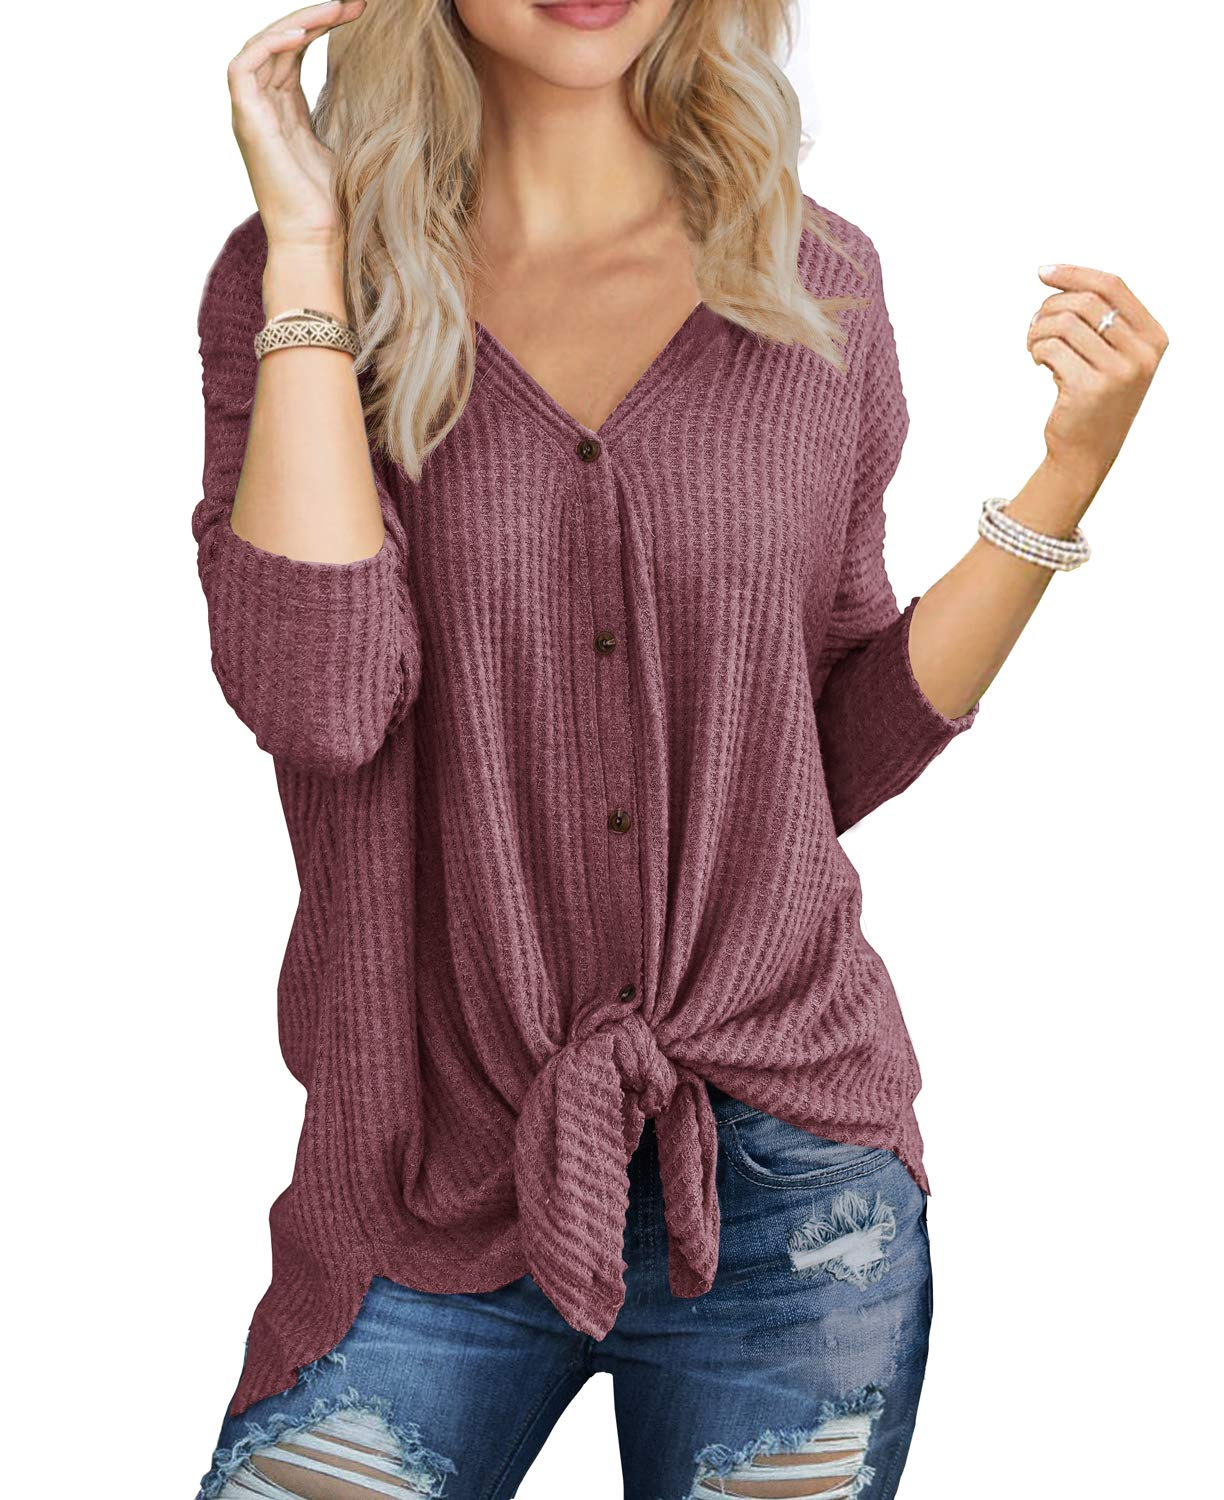 IWOLLENCE Womens Loose Henley Blouse Bat Wing Long Sleeve Button Down T Shirts Tie Front Knot Tops Rust Red M by IWOLLENCE